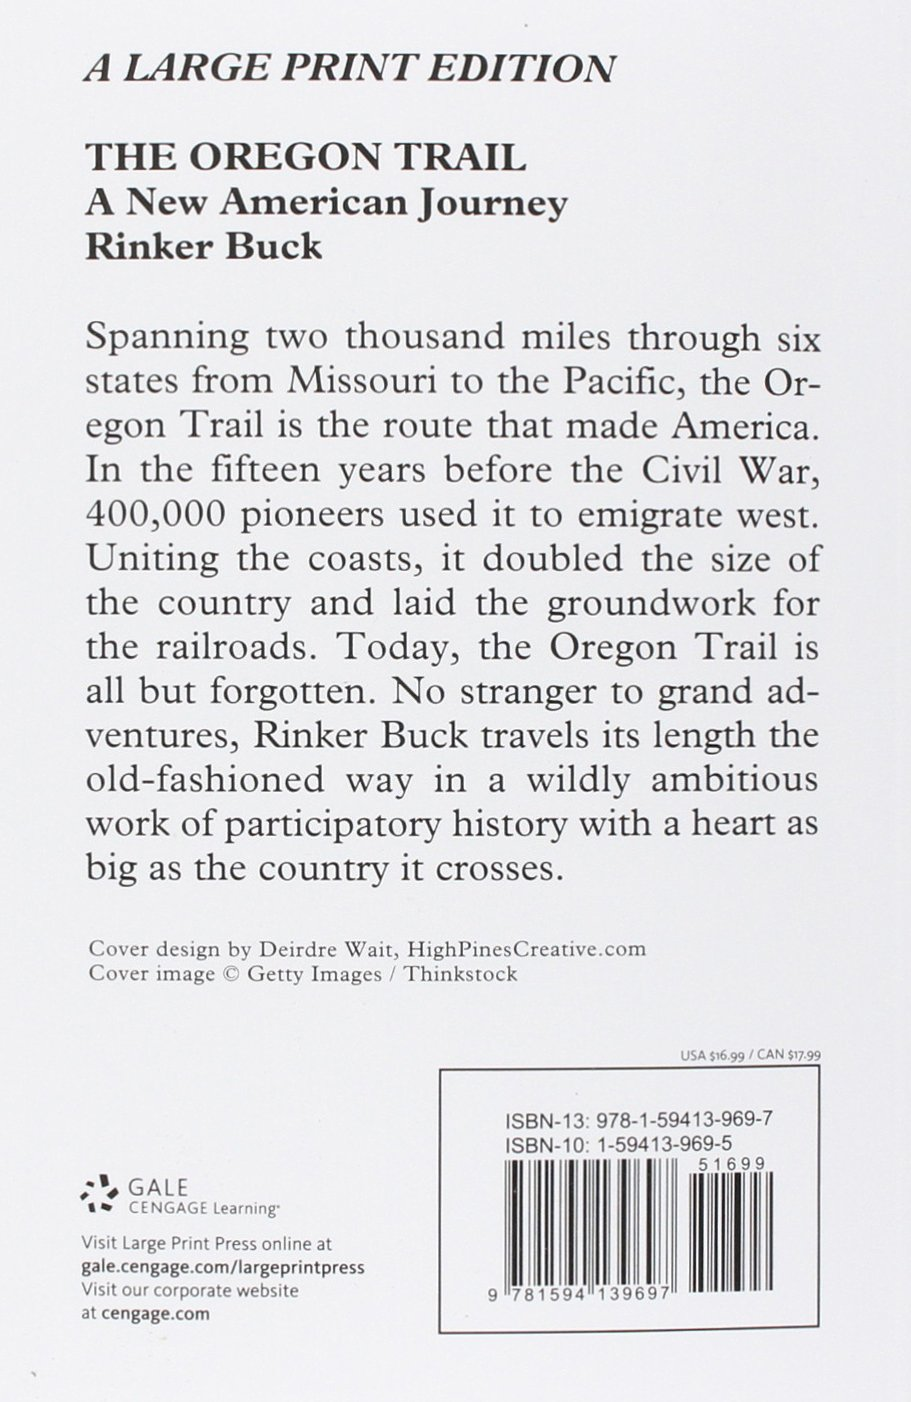 The Oregon Trail: A New American Journey (thorndike Press Large Print Books  Popular And Narrative Nonfiction): Rinker Buck: 9781594139697: Amazon:  Books